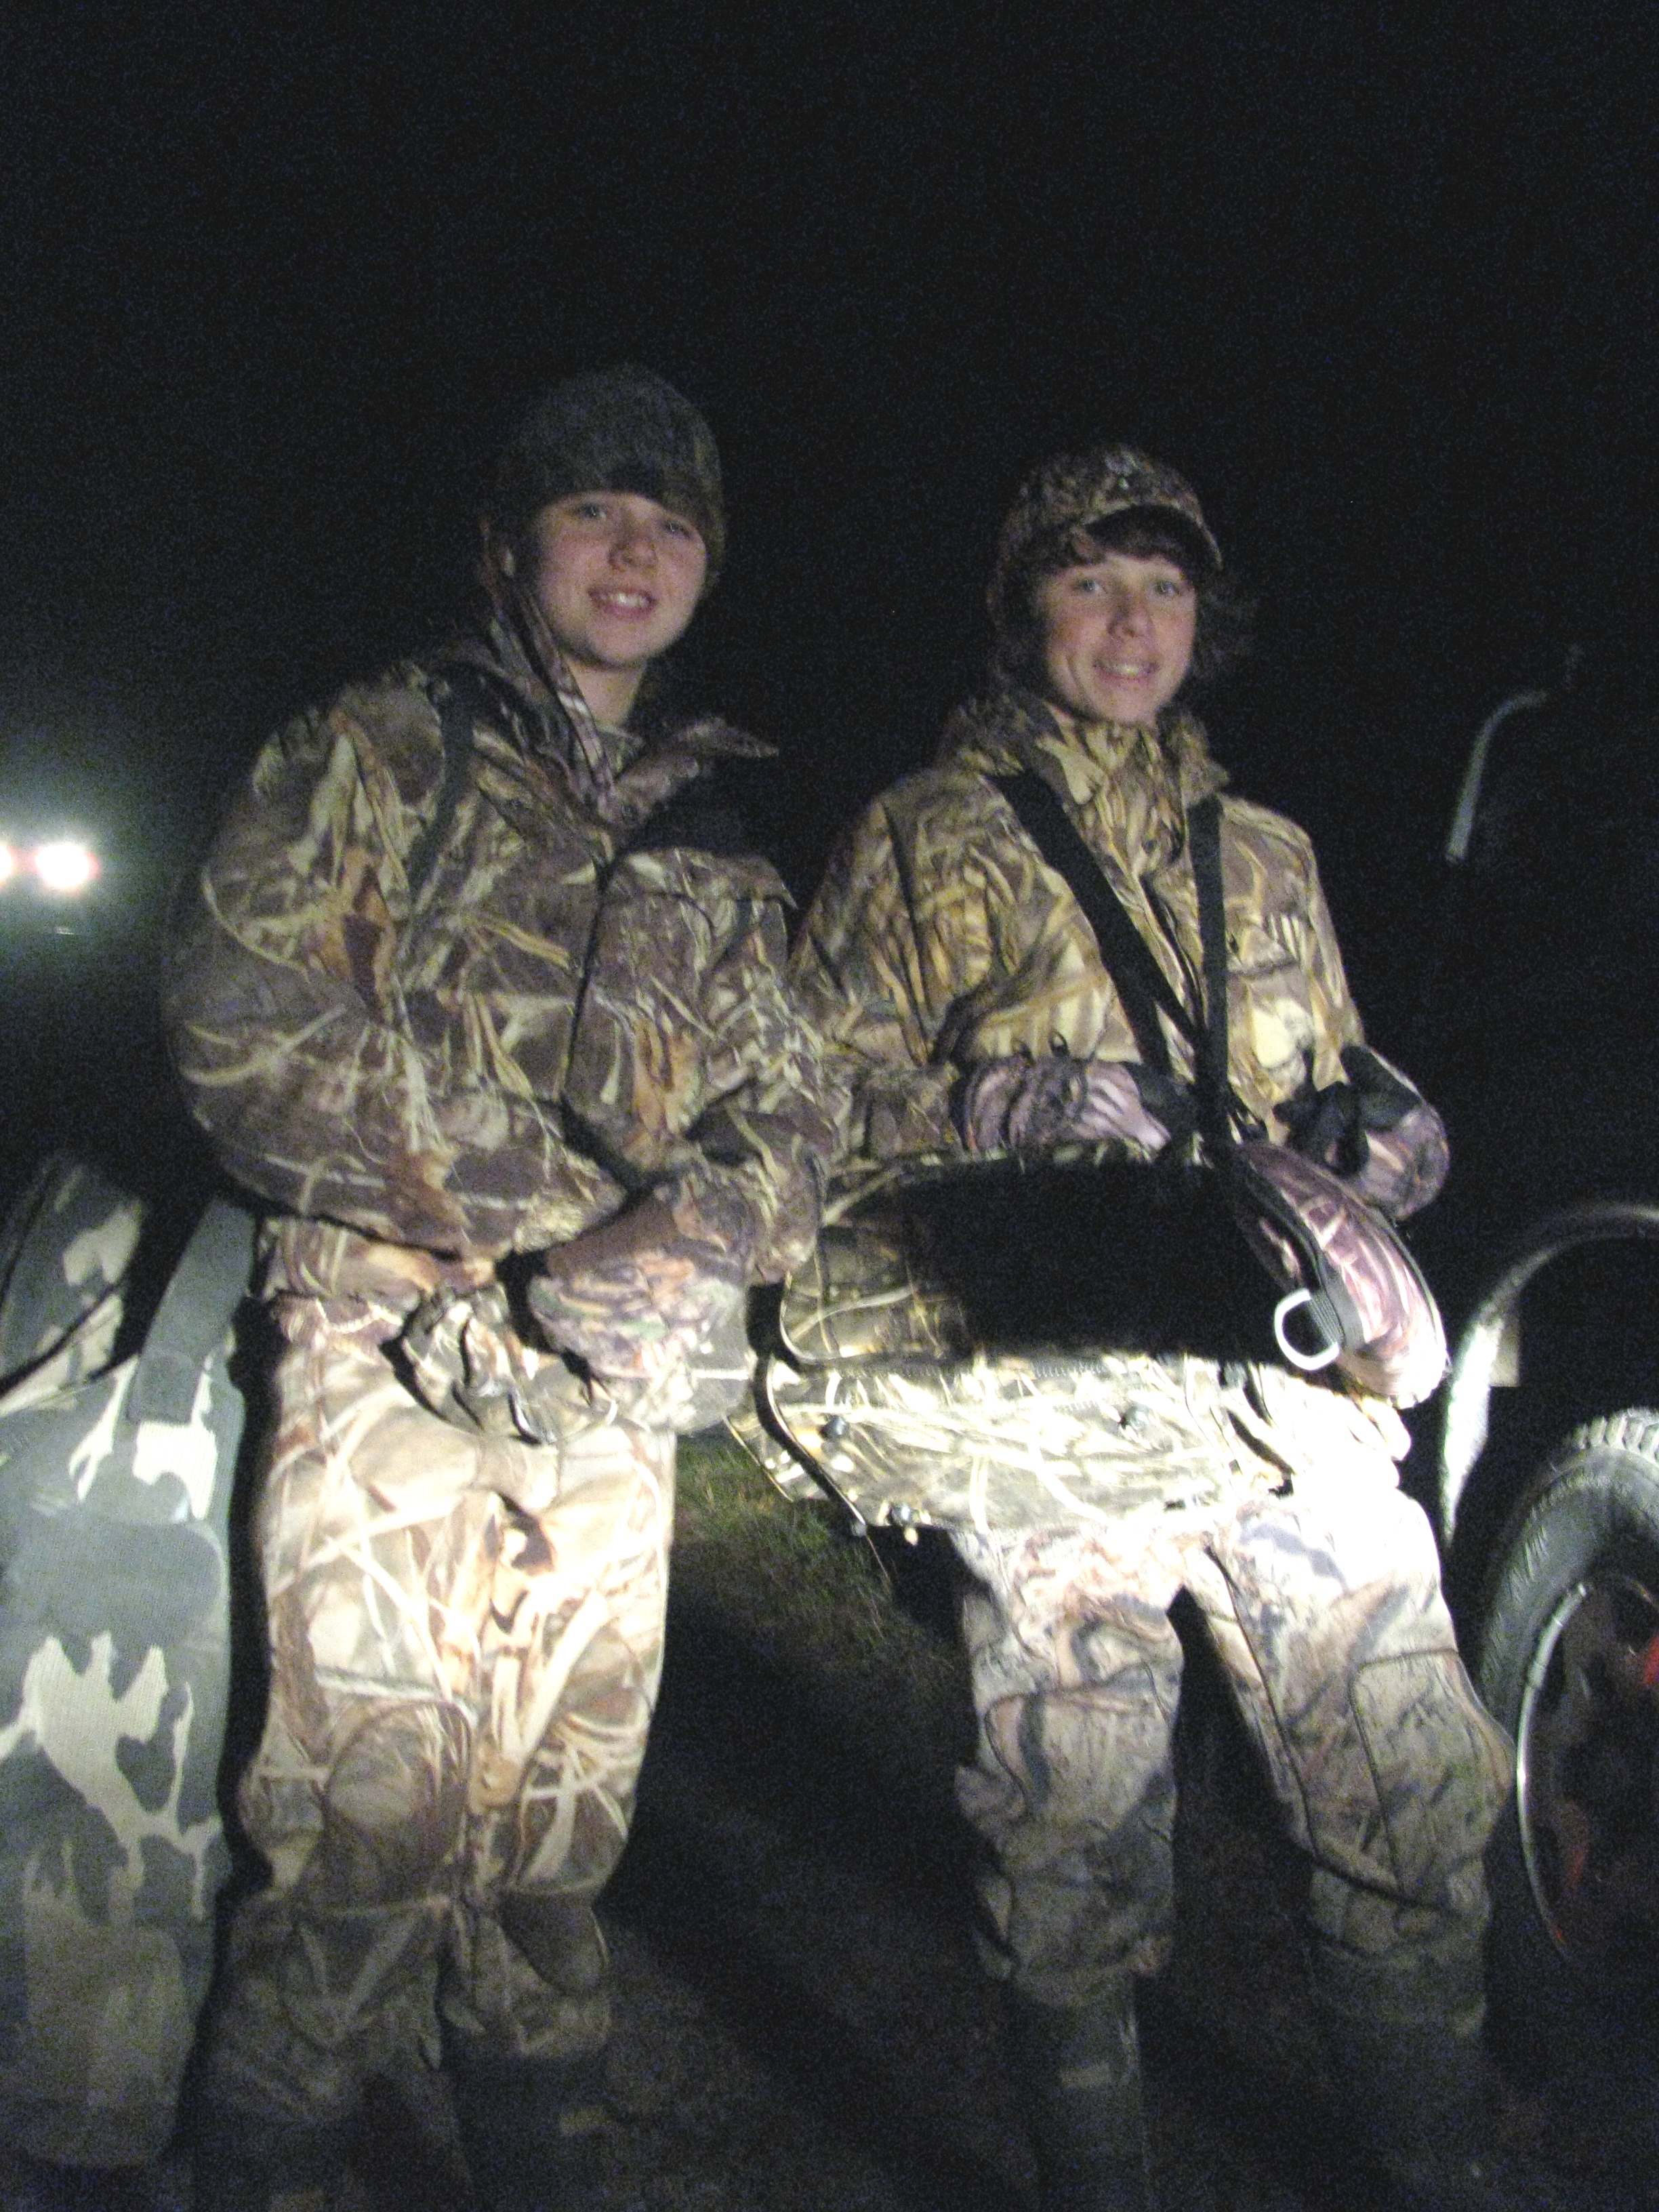 Ellie and Grier are all grins at 5:00am, ready to set up decoys in preparation for the hunt.